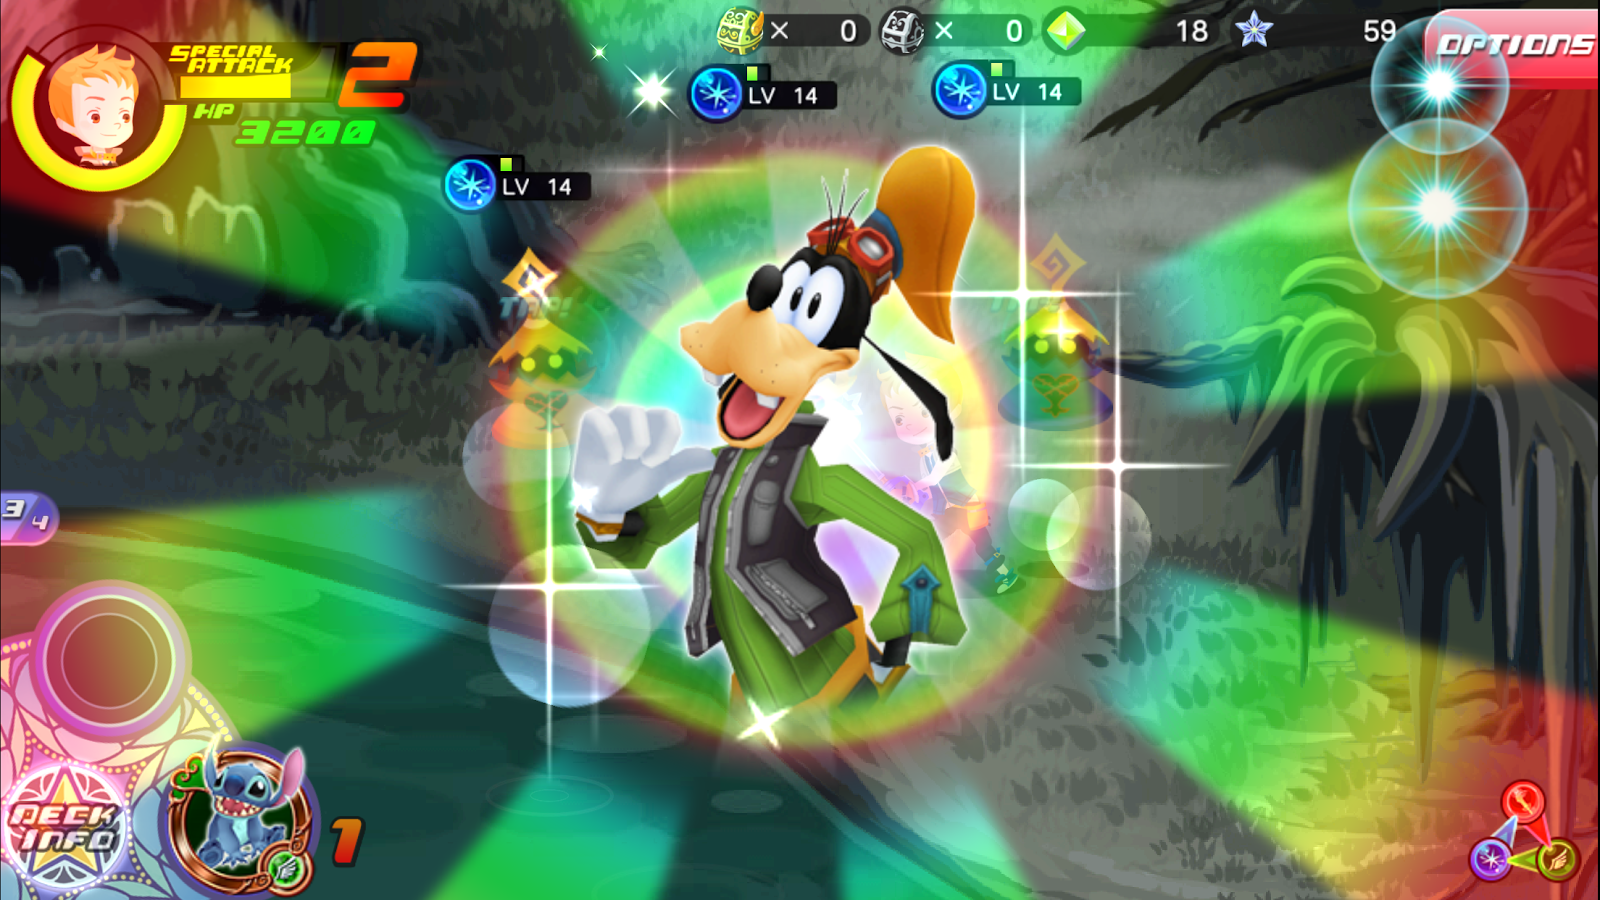 KINGDOM HEARTS Unchained χ Screenshot 7